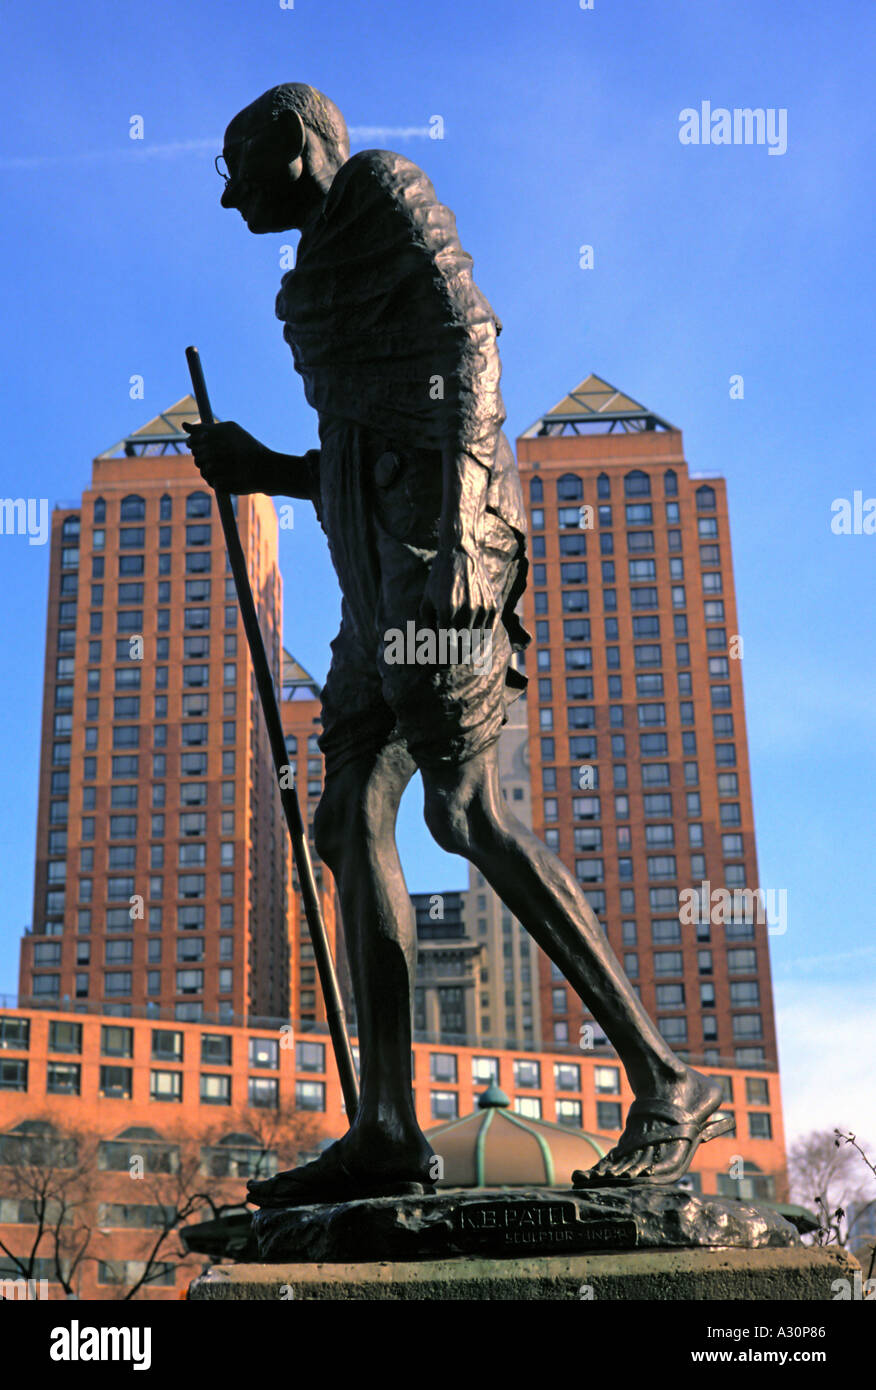 Statue of the Mahatma Gandhi by Indian sculptor K B Patel at Union Square in New York - Stock Image